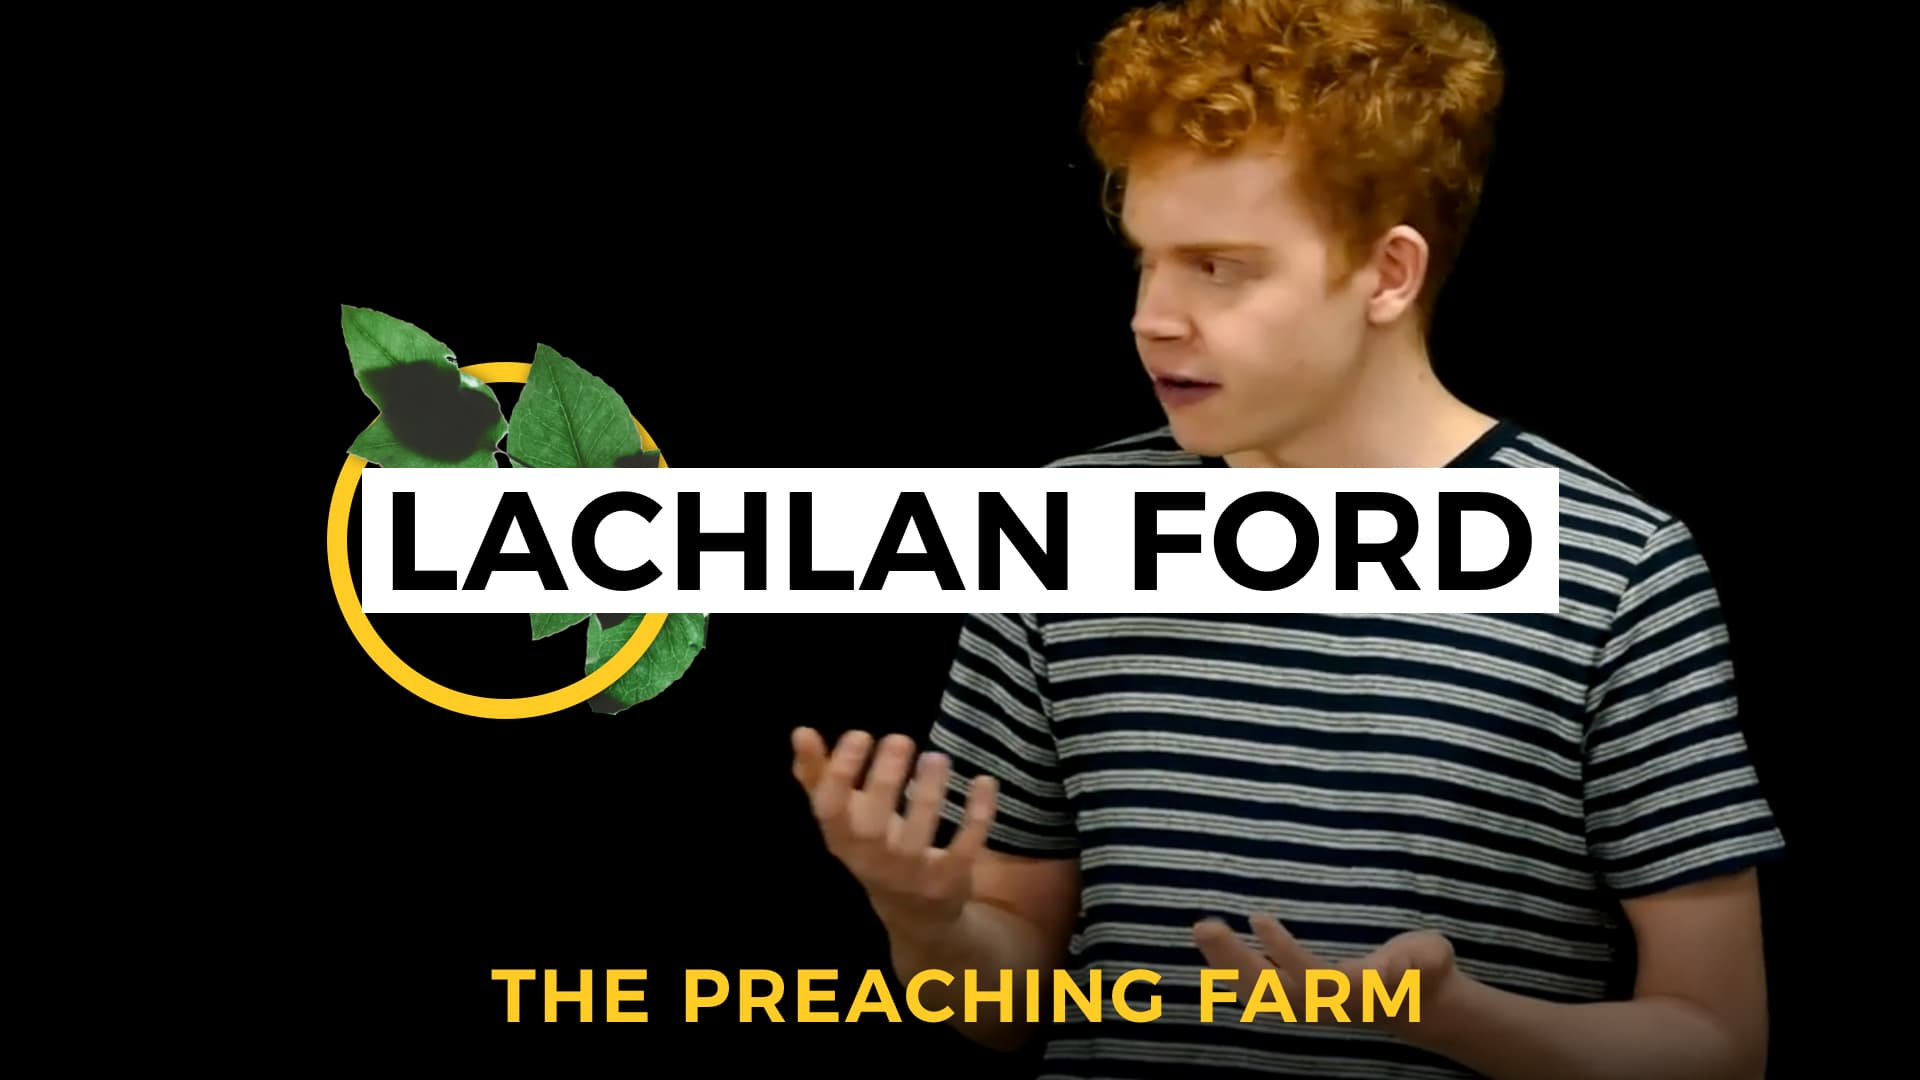 The Preaching Farm 1: Lachlan Ford